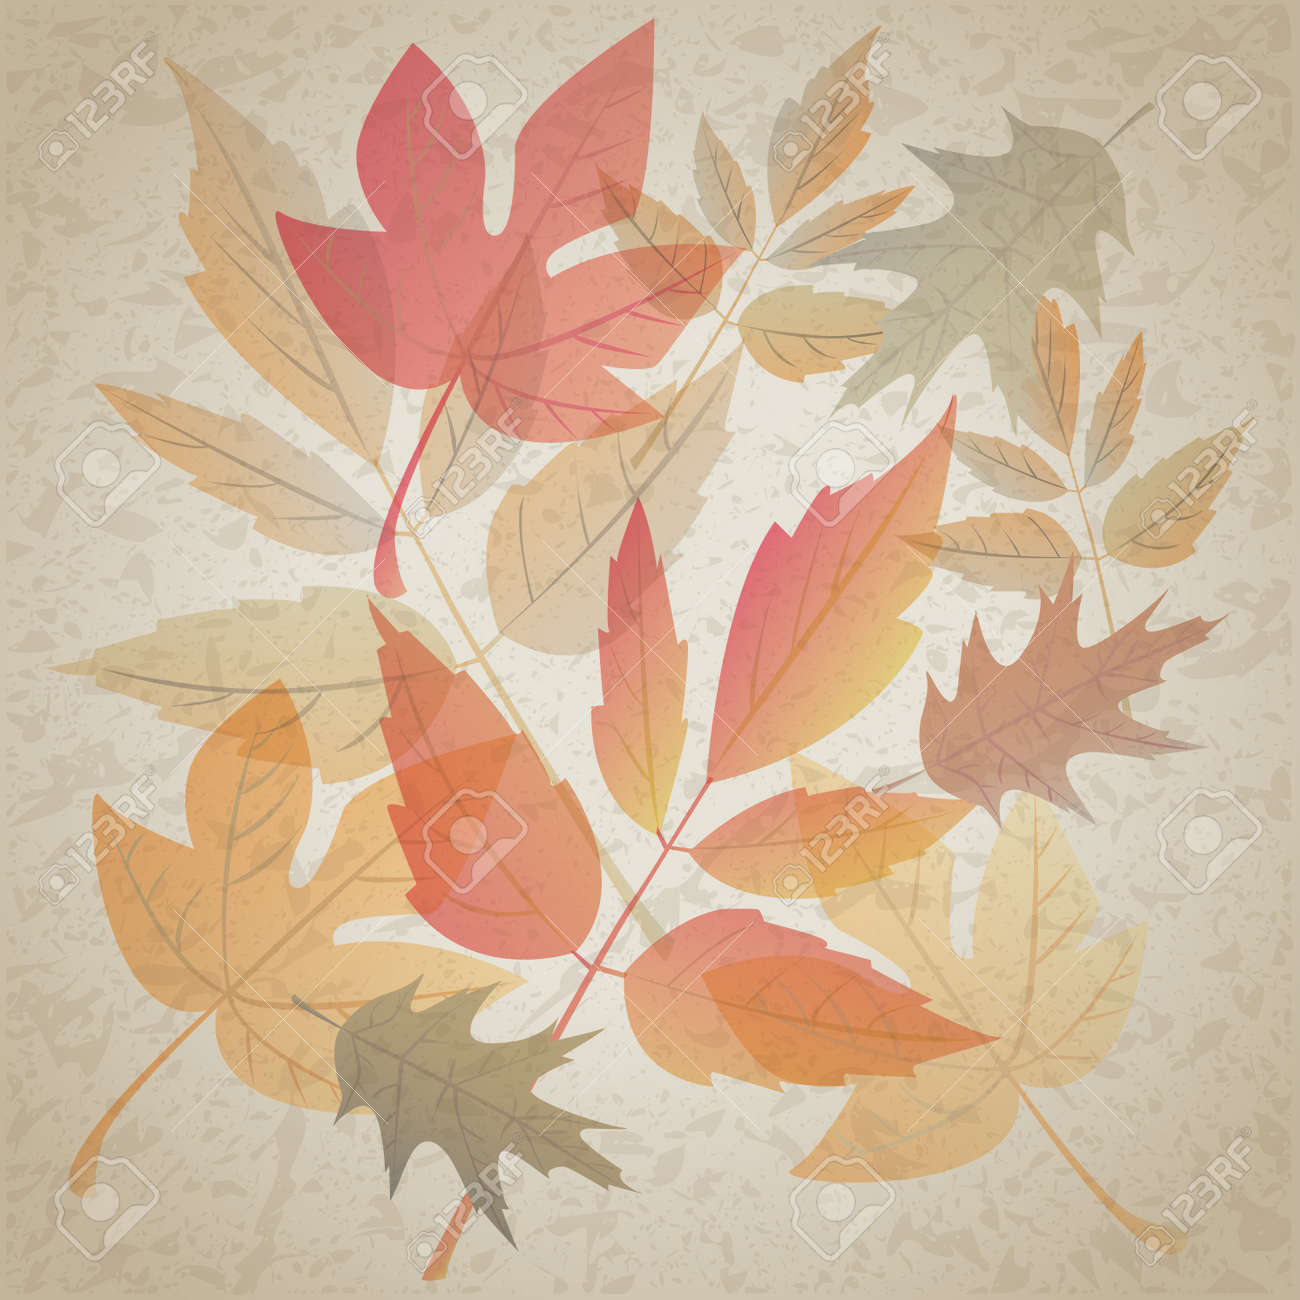 Autumn leafs on dirty grunge background Stock Vector - 20075059